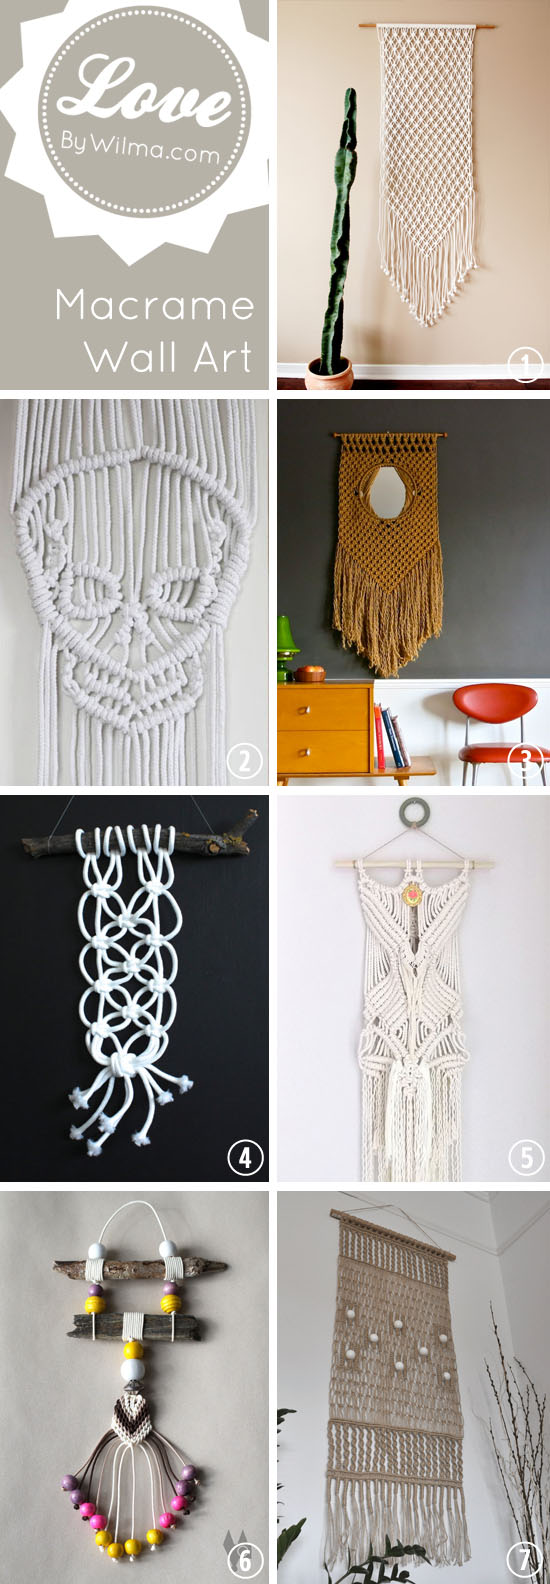 Love this: Macrame wall art on Etsy